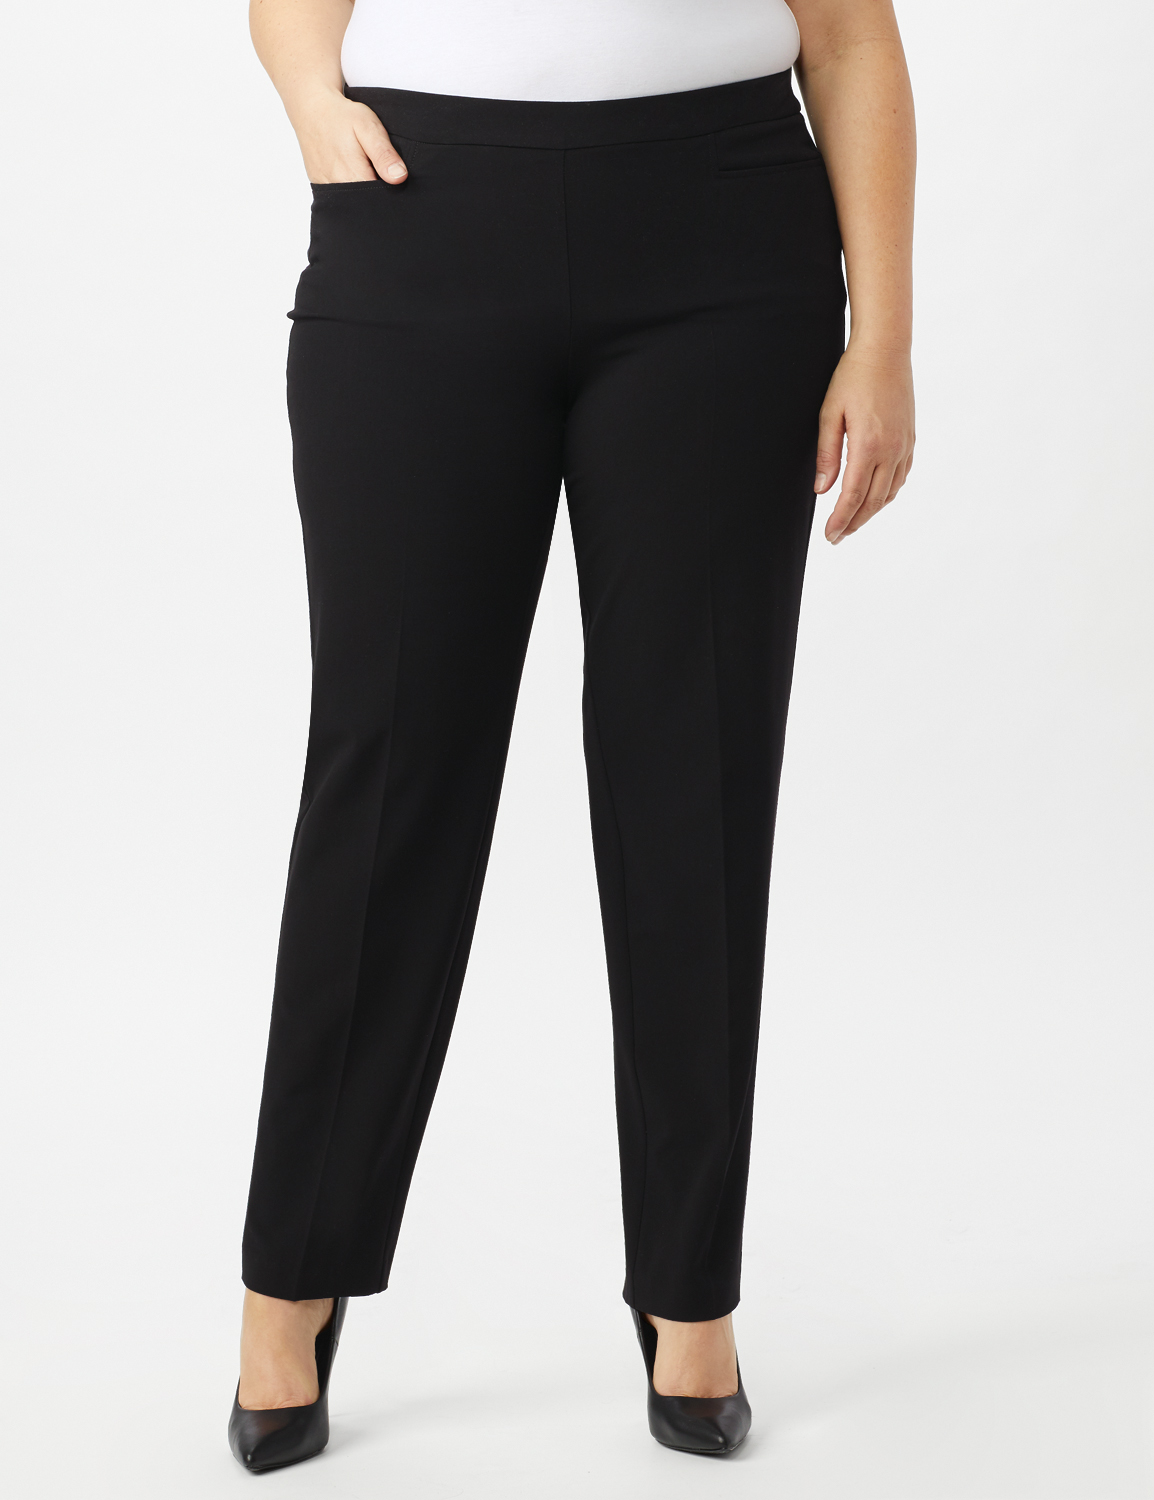 Plus Roz & Ali Pull On Secret Agent Pant with L Pockets- Average Length -Black - Front